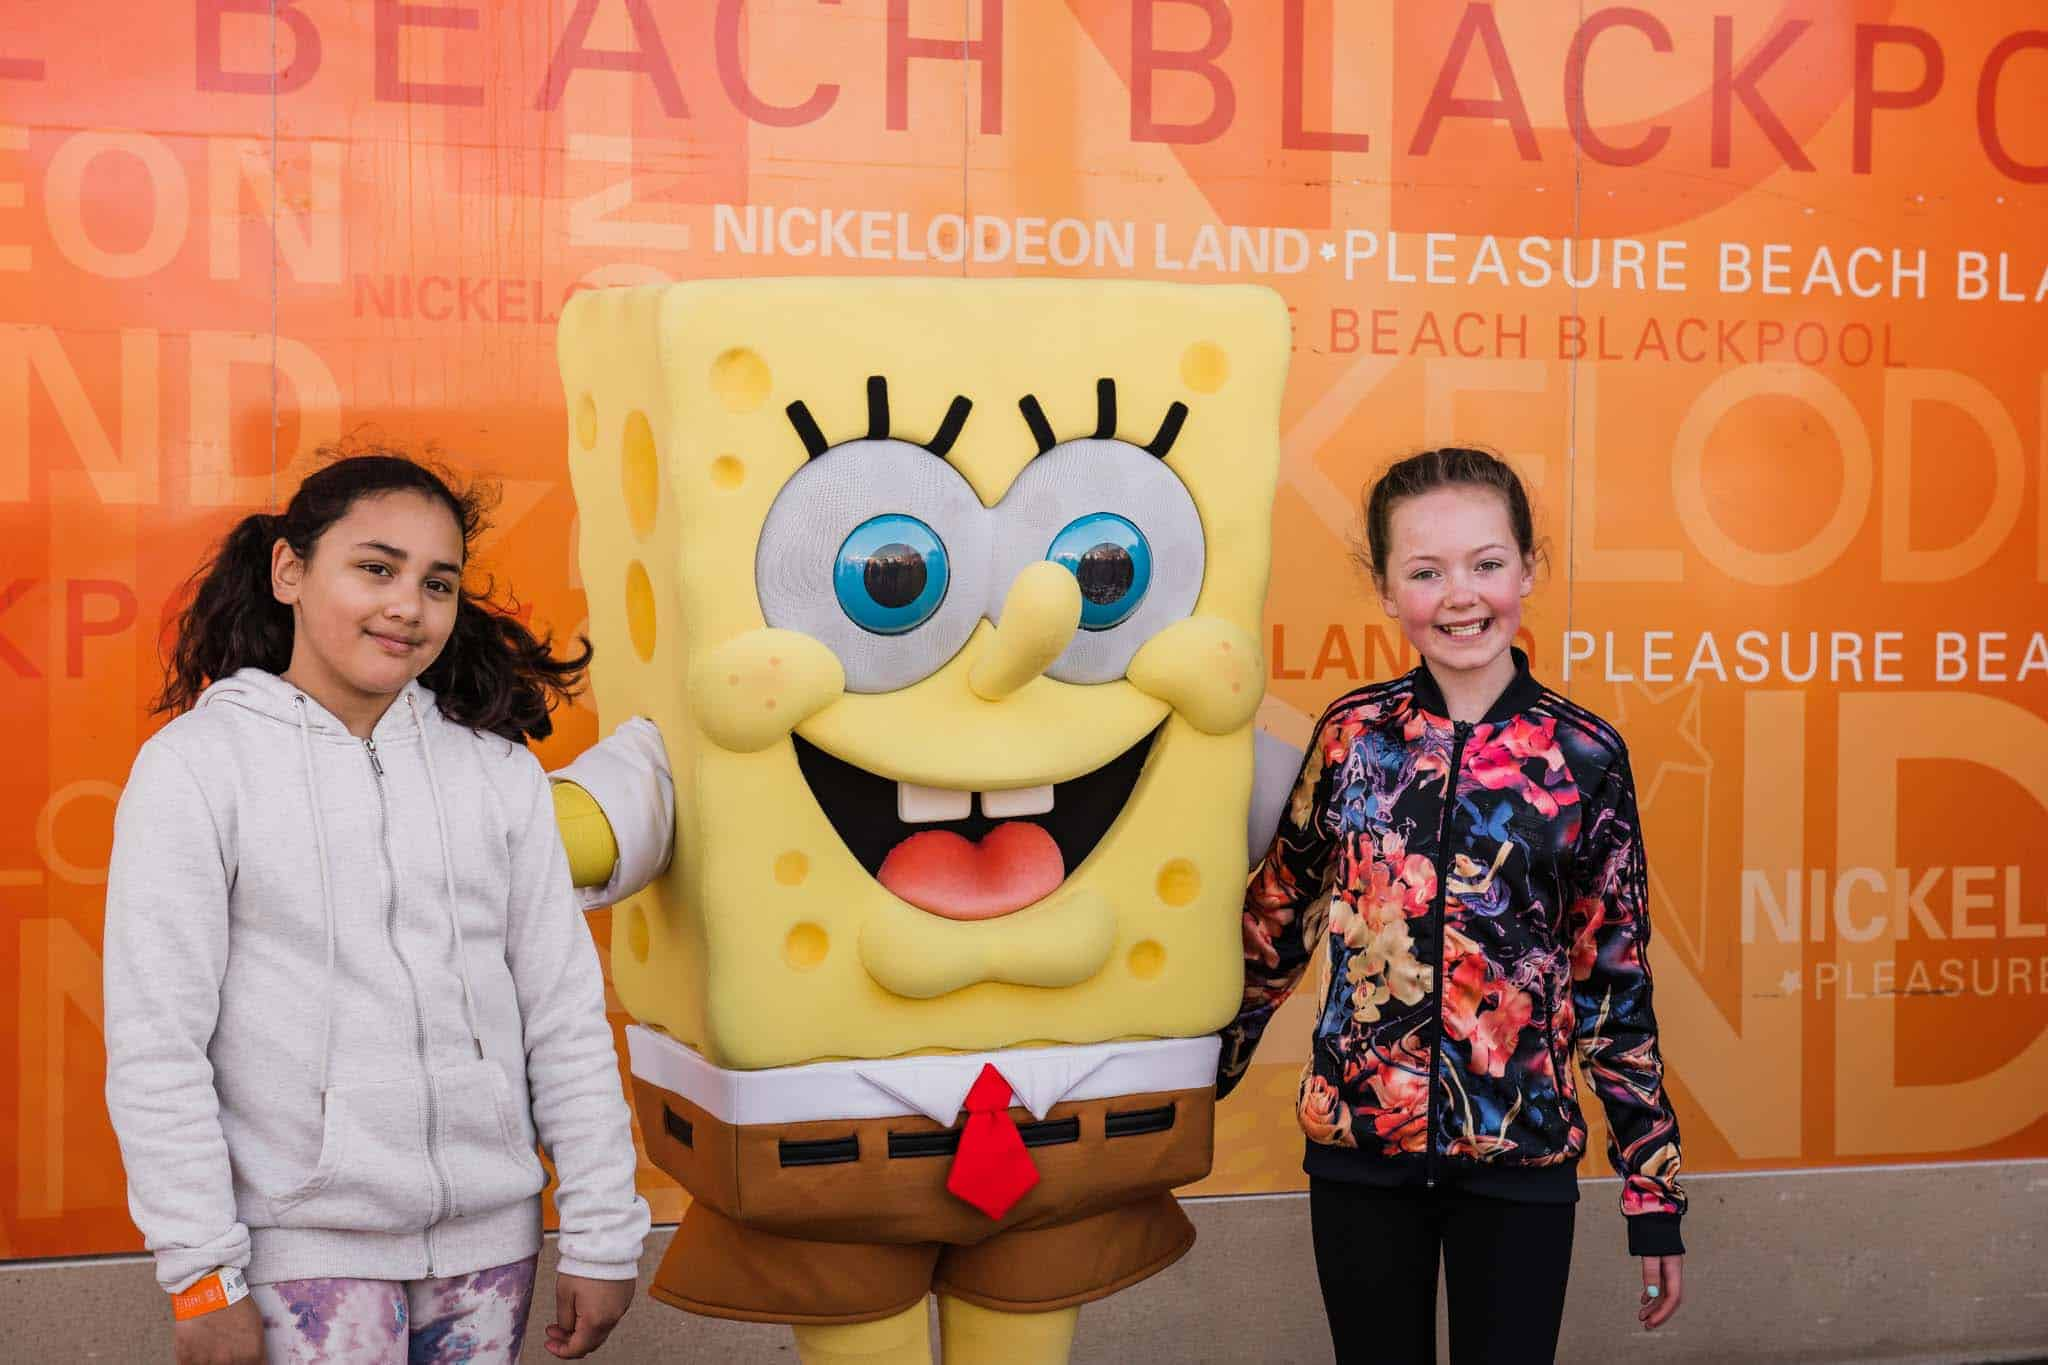 meeting sponge bob at nickelodeon land